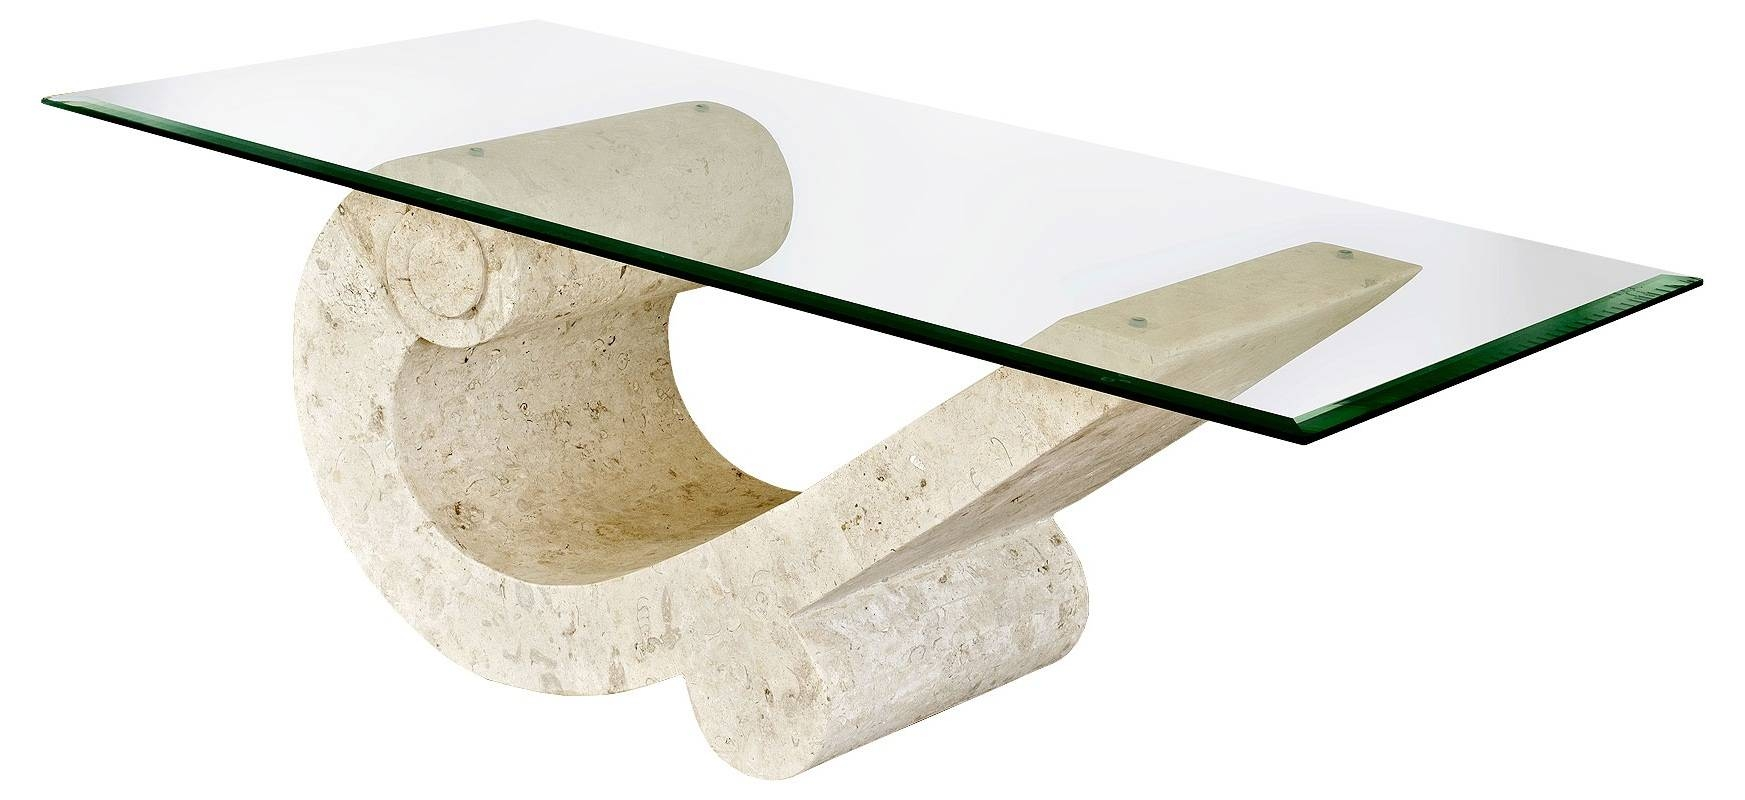 Great Marble Base Glass Top Coffee Table 23 For Home Design Ideas Within Marble Base Glass Top Coffee Table (View 4 of 15)